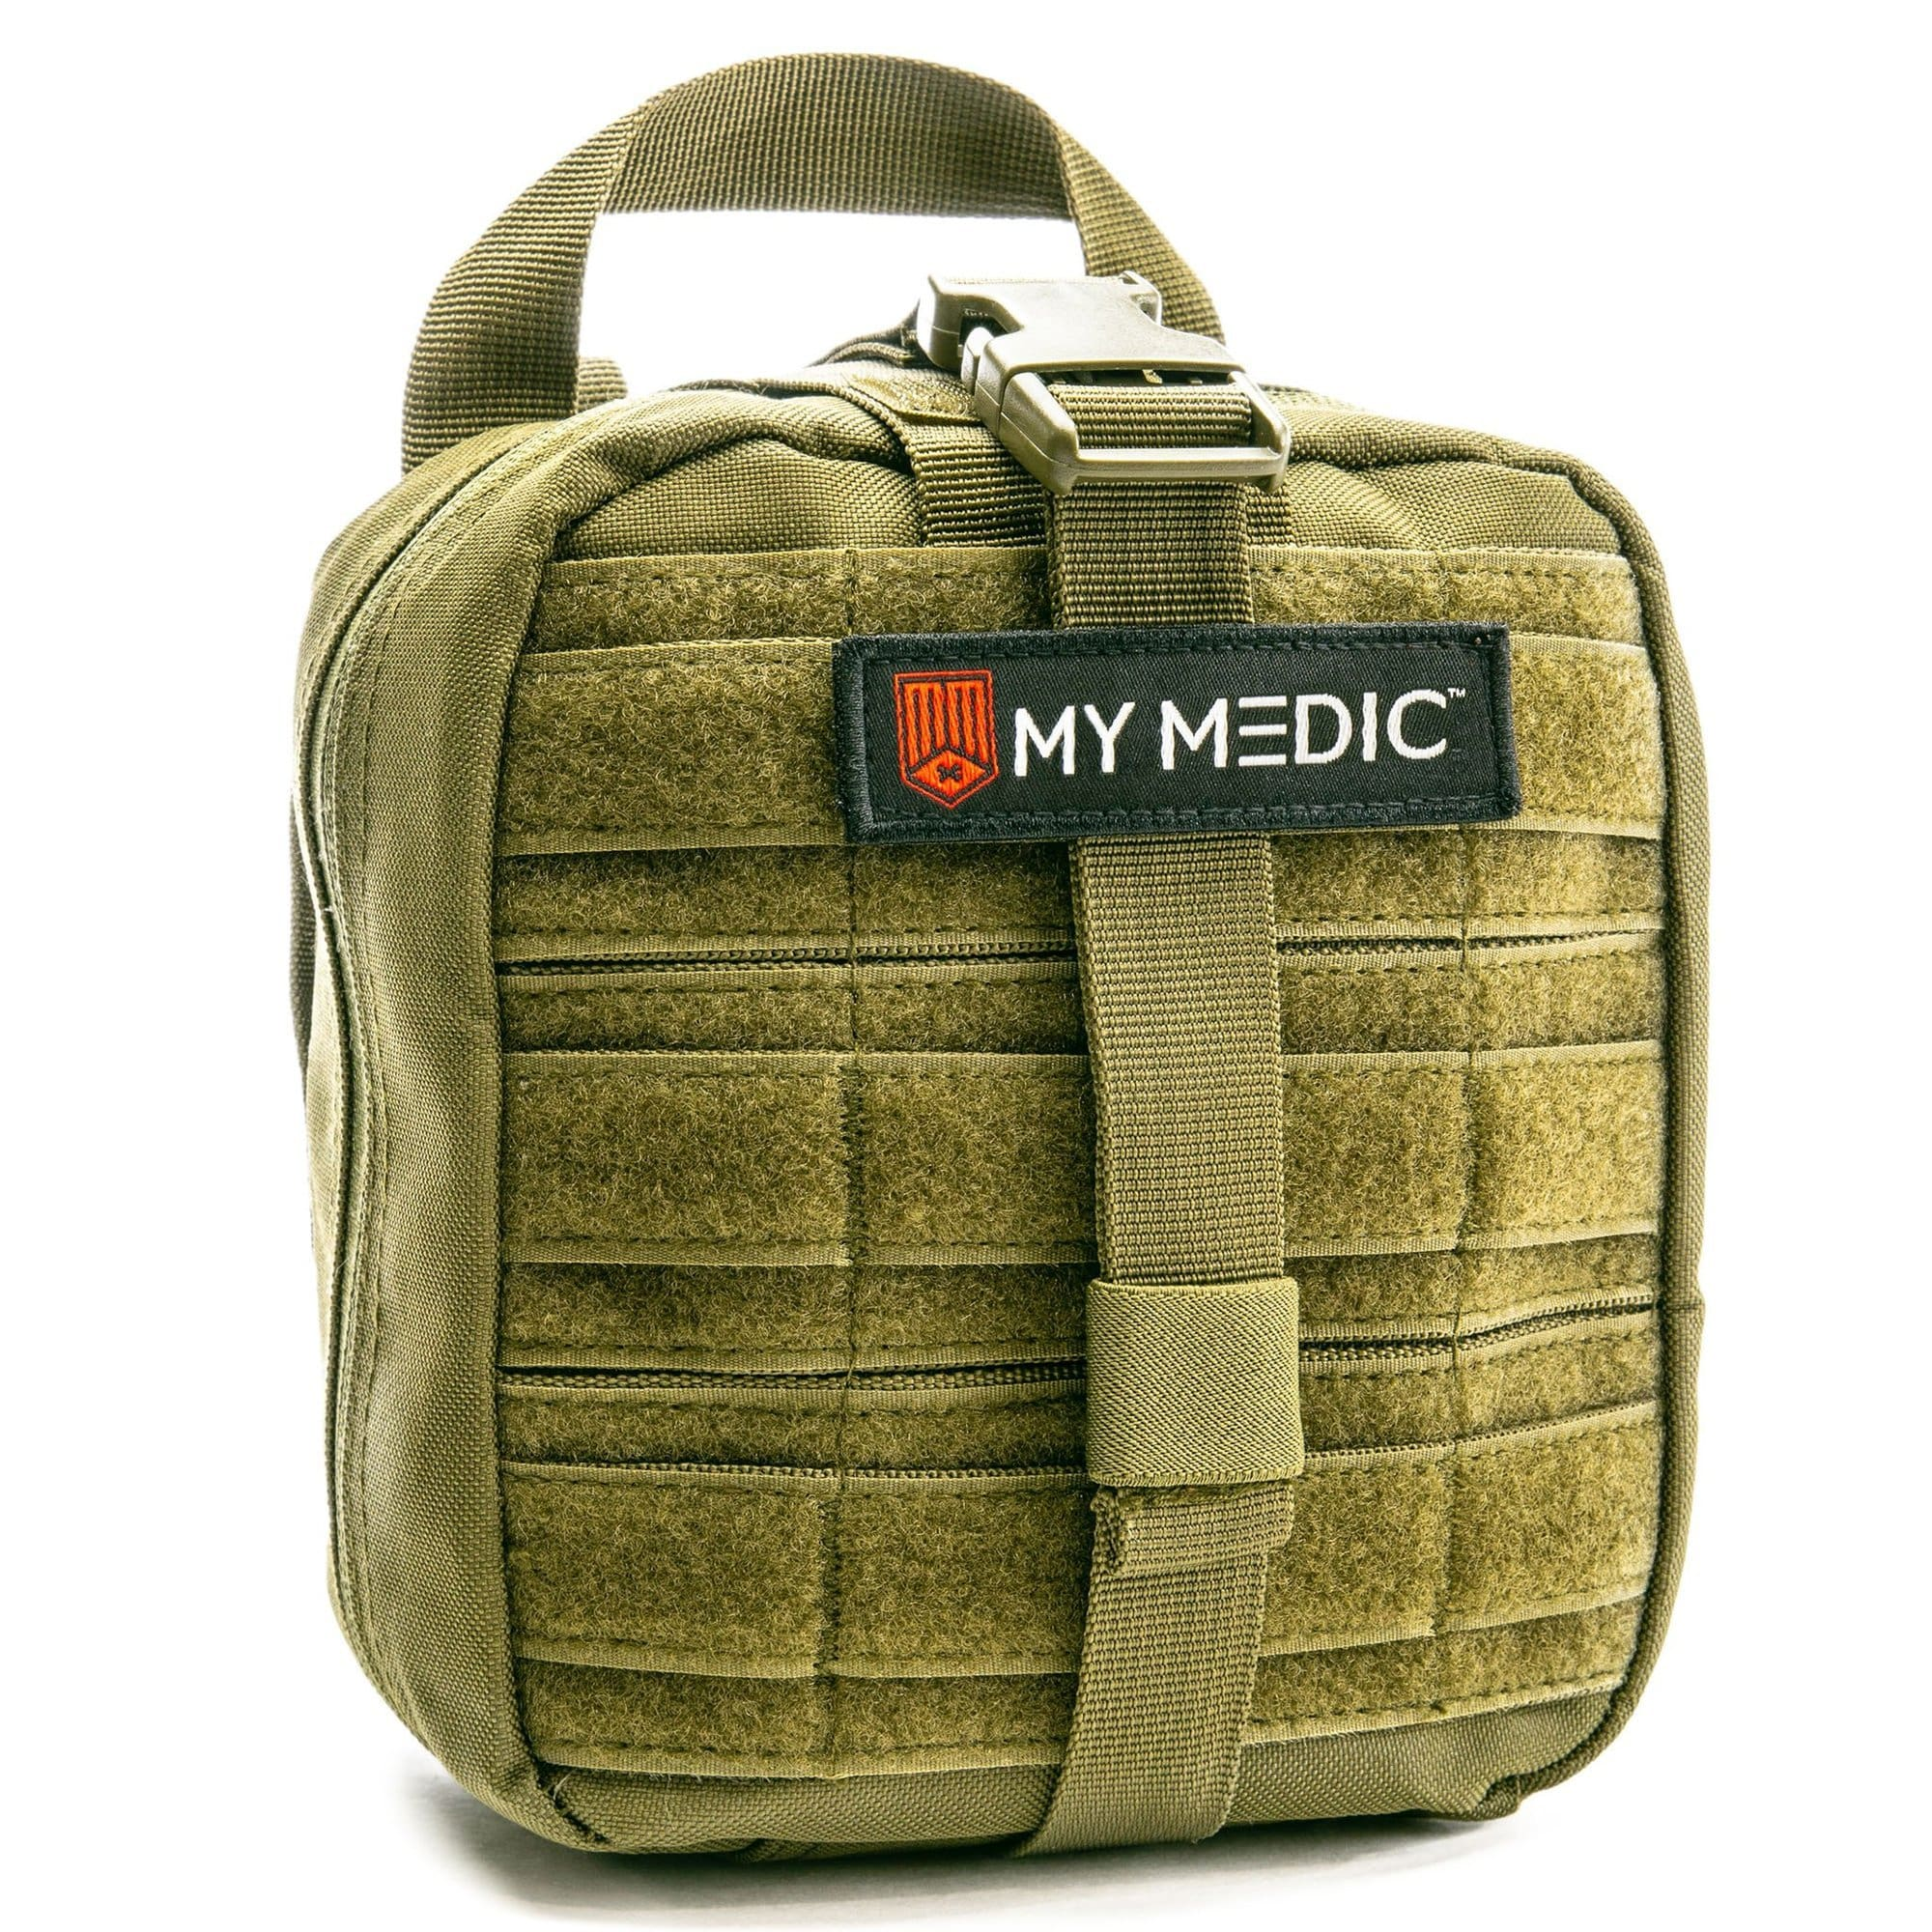 MyFAK: Basic Individual First Aid Kit [IFAK] by MyMedic (color: GREEN)